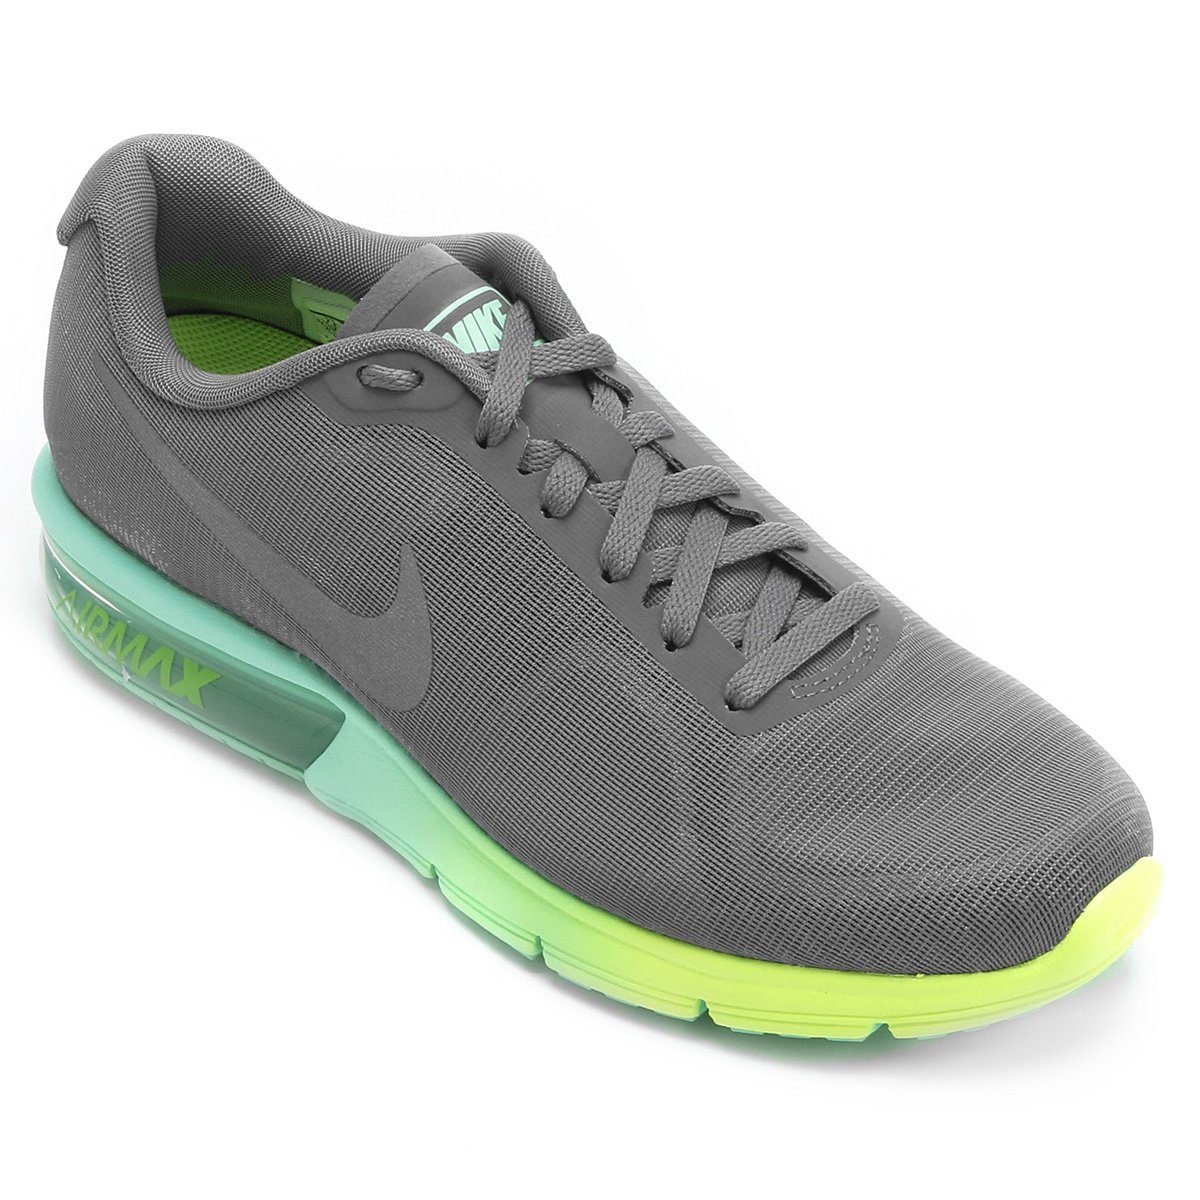 b4b2227938 Tênis Nike Air Max Sequent Feminino | Loja do Inter